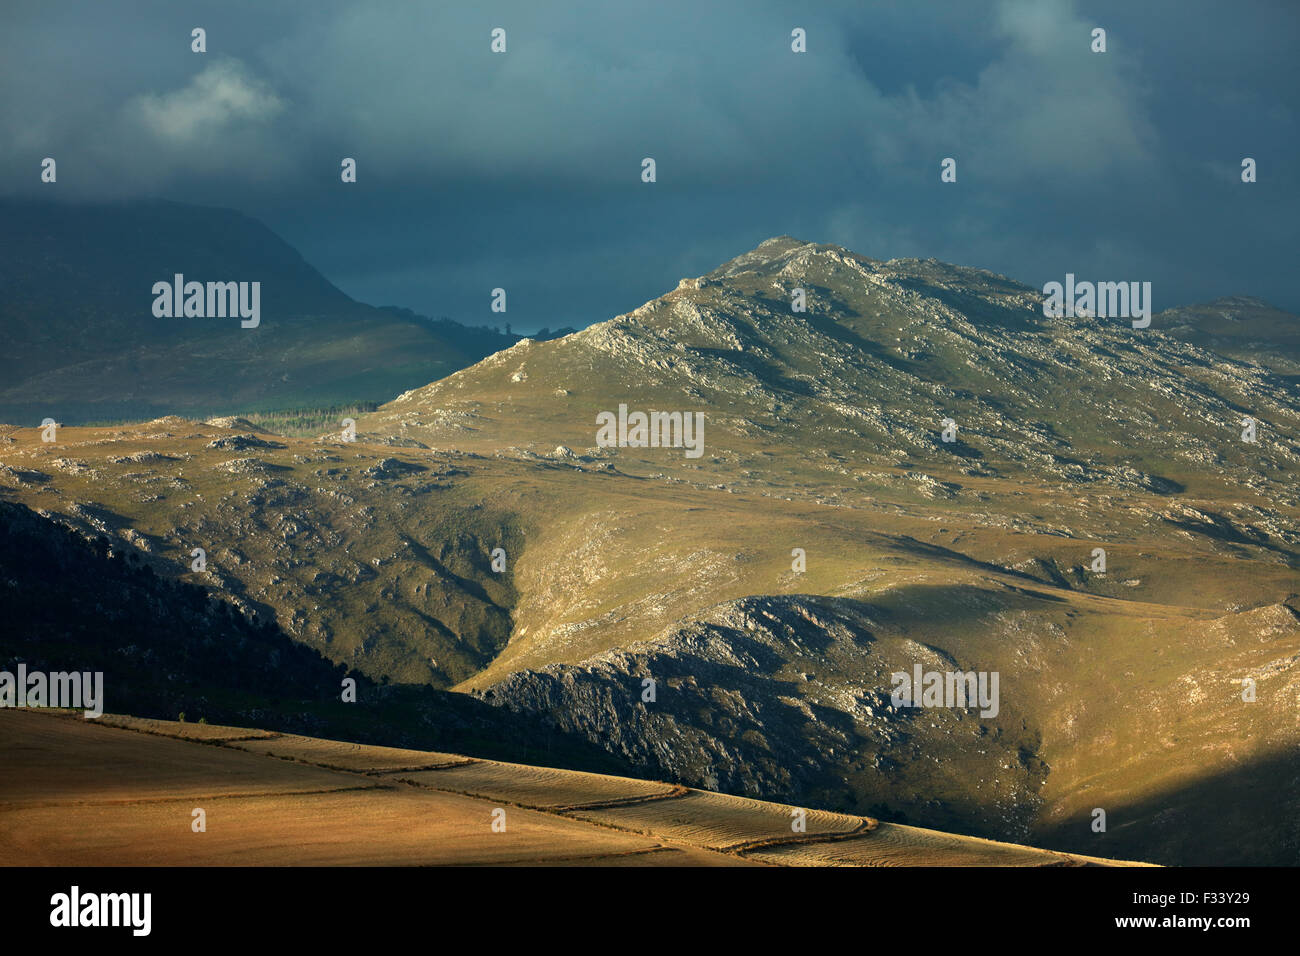 mountains in the Overberg region near Villiersdorp, Western Cape, South Africa - Stock Image